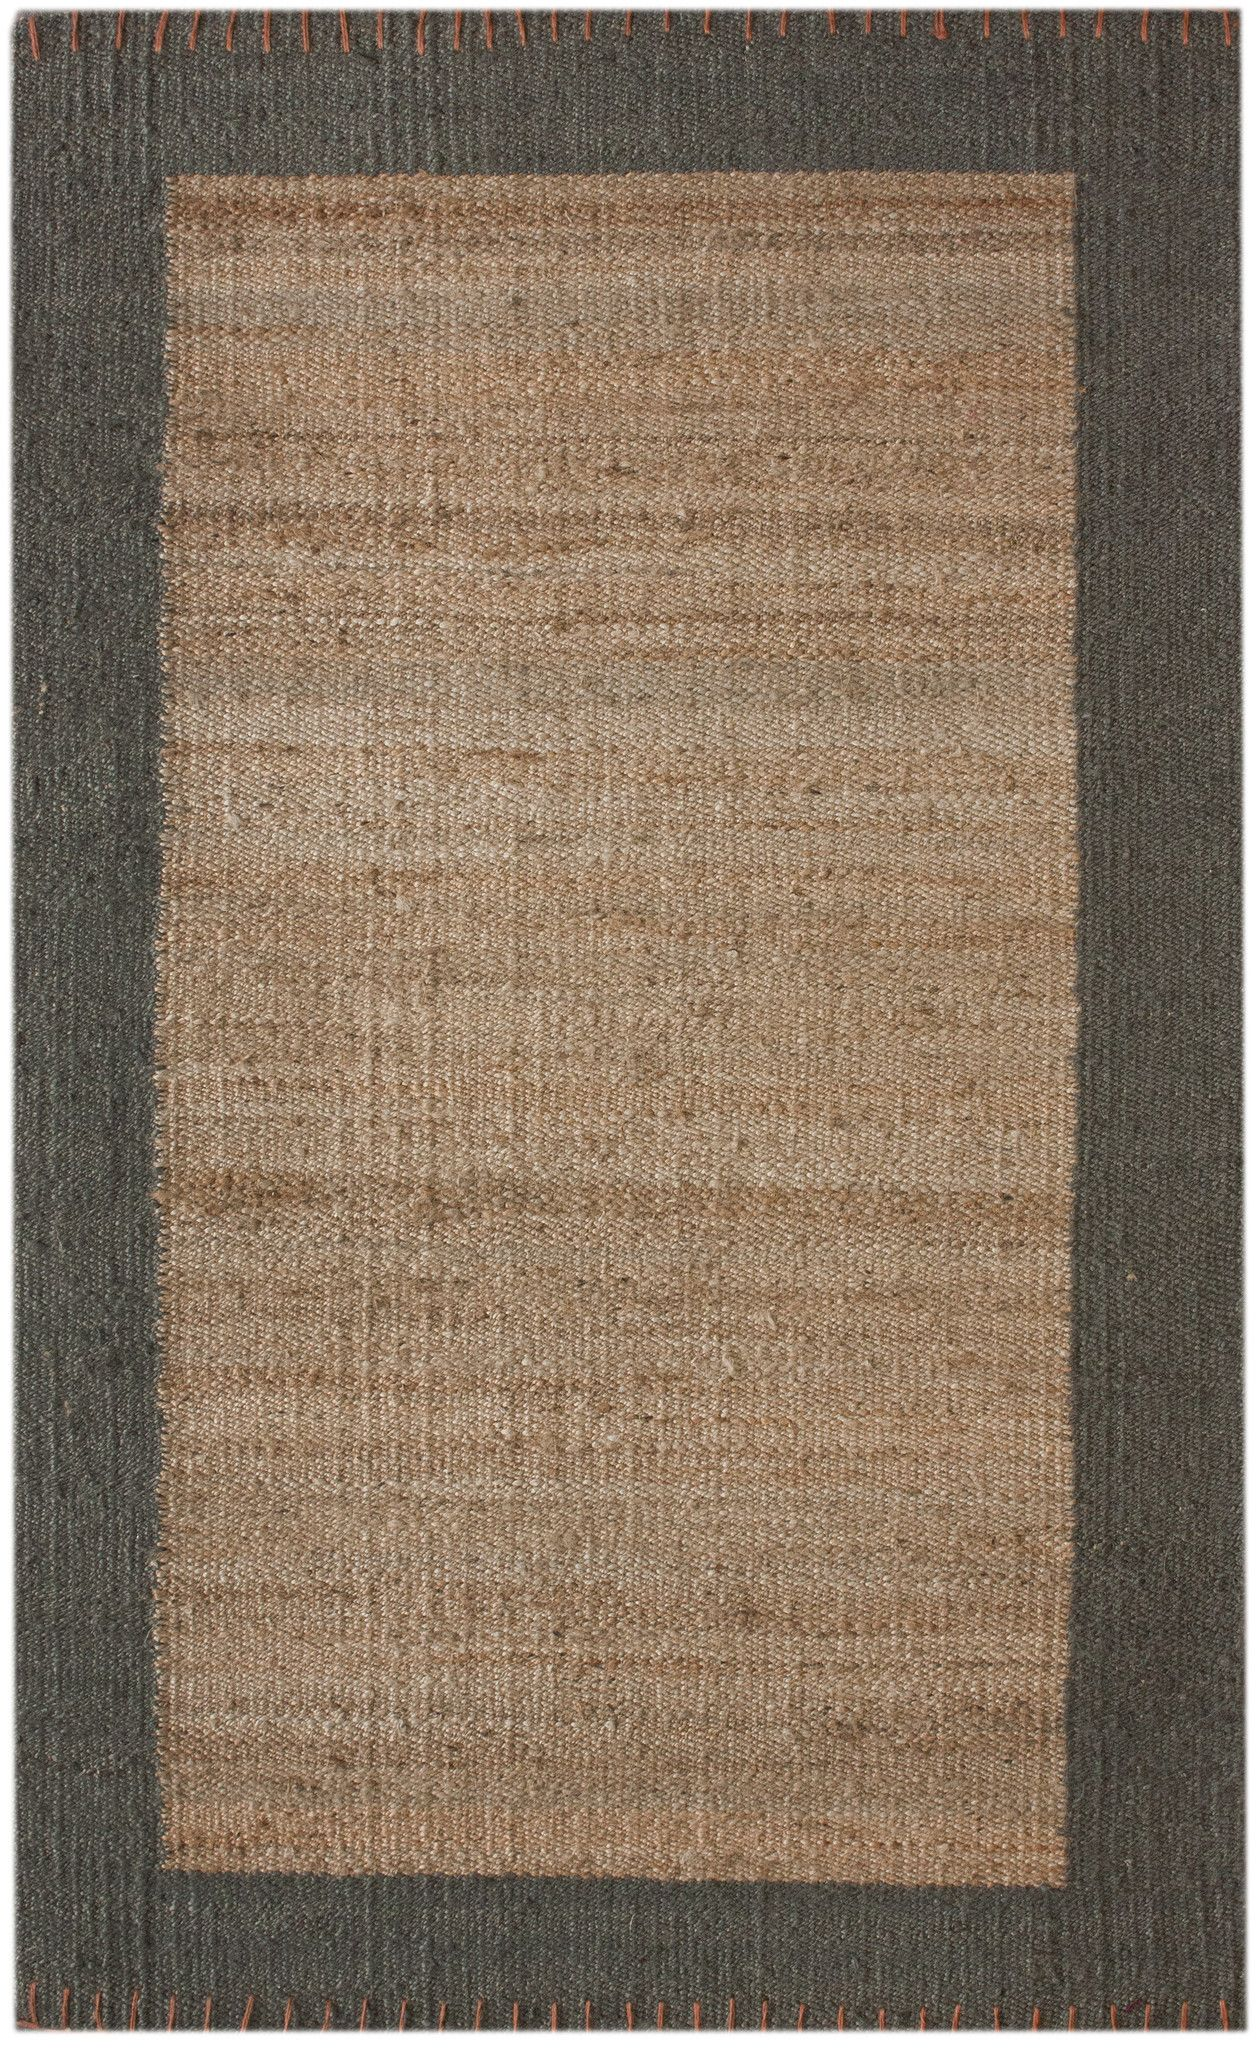 Cameron 100% Jute Area Rug in Natural design by NuLoom